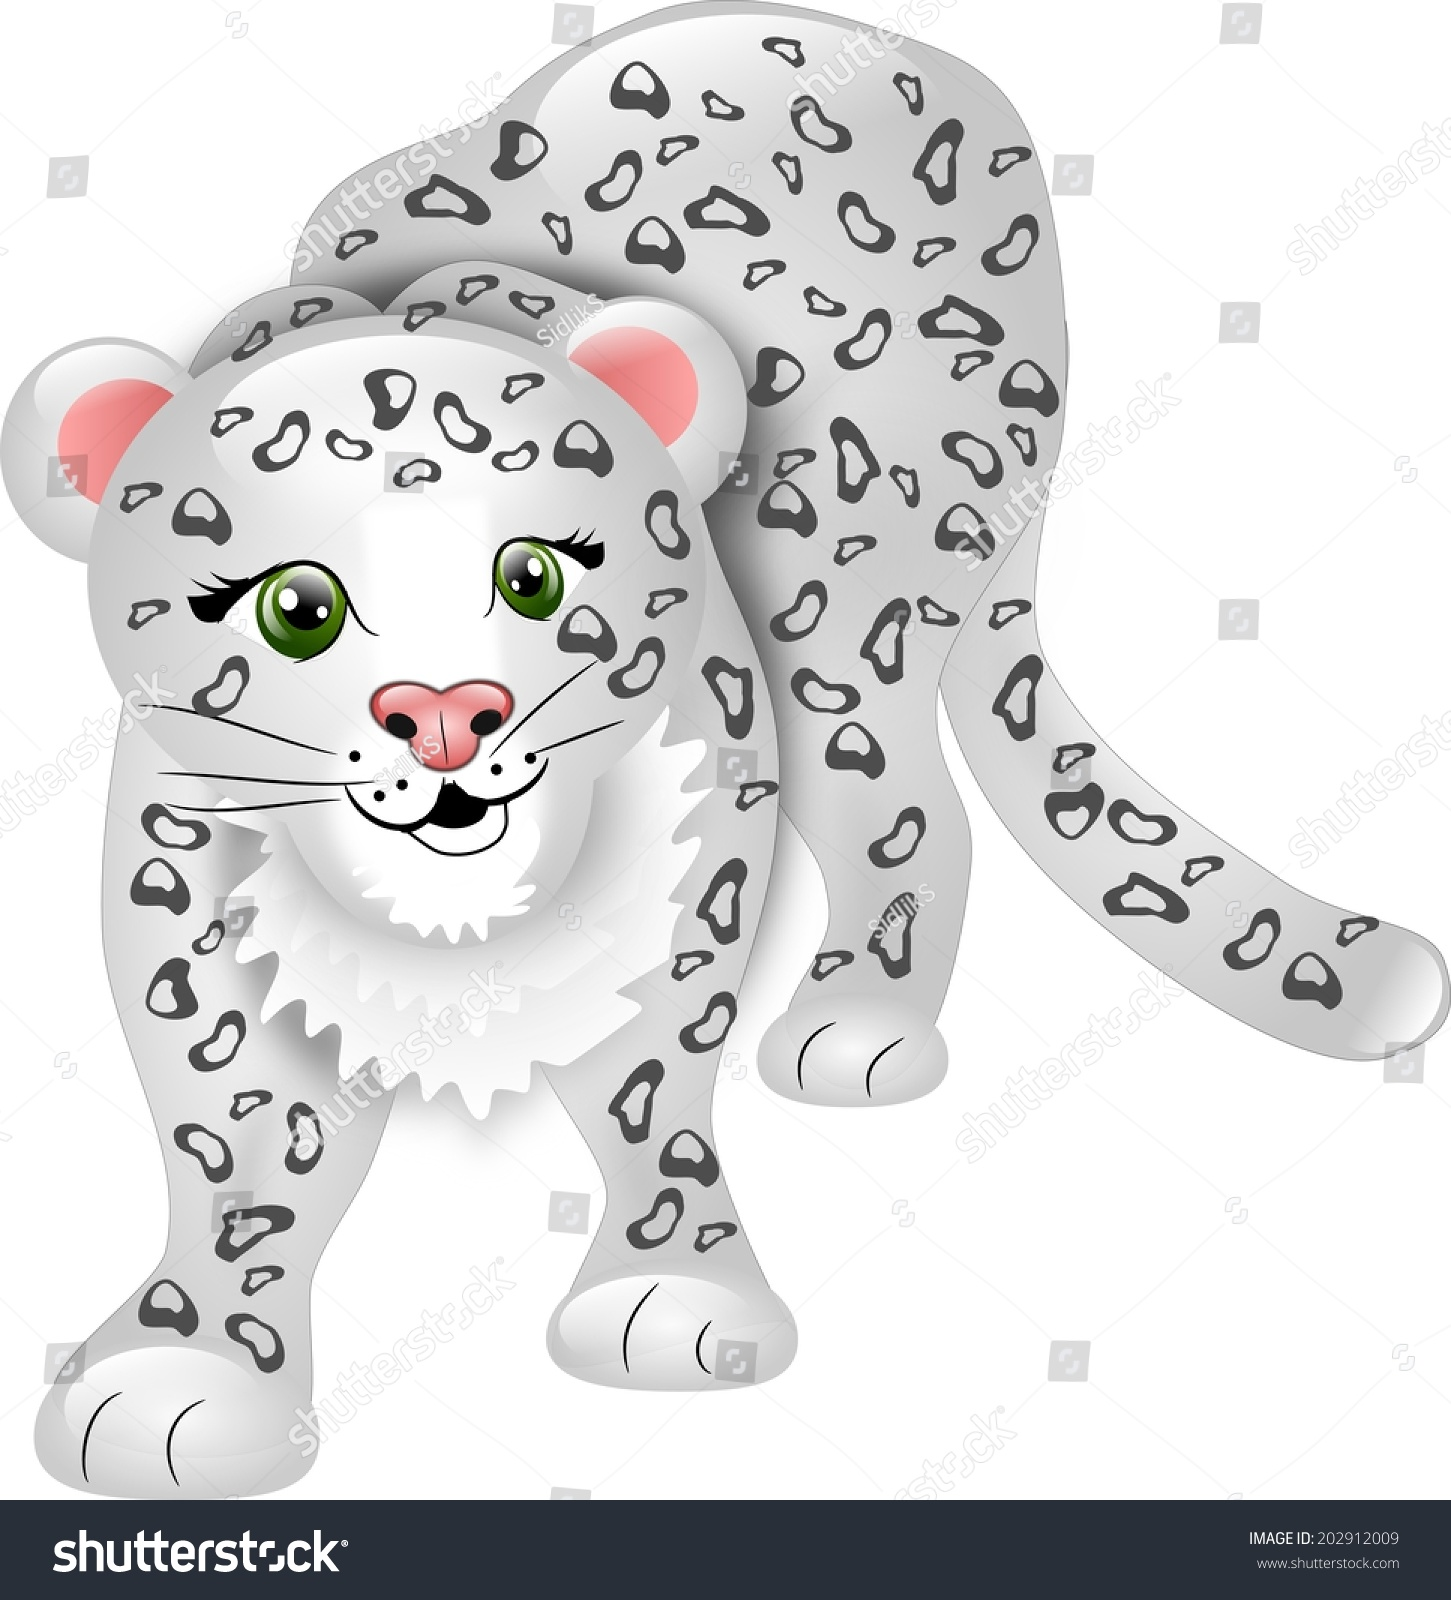 Cartoon snow leopard - photo#13